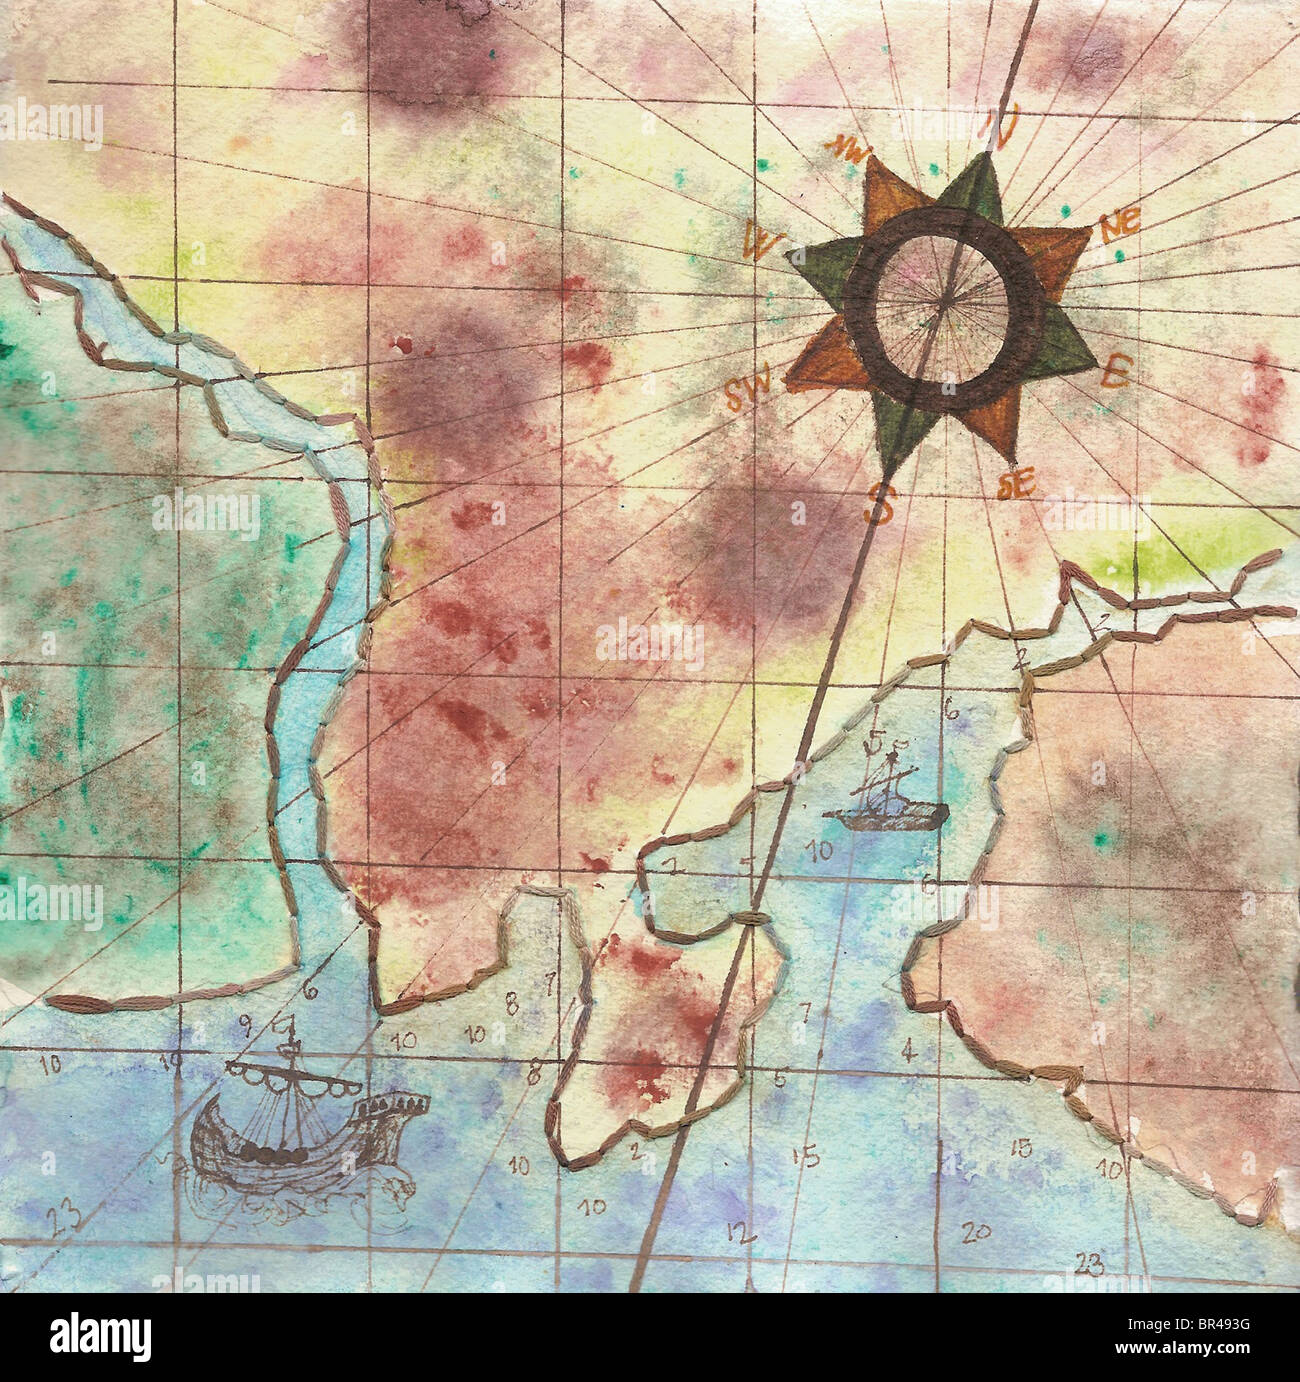 A painting on textured paper of a map and compass - Stock Image